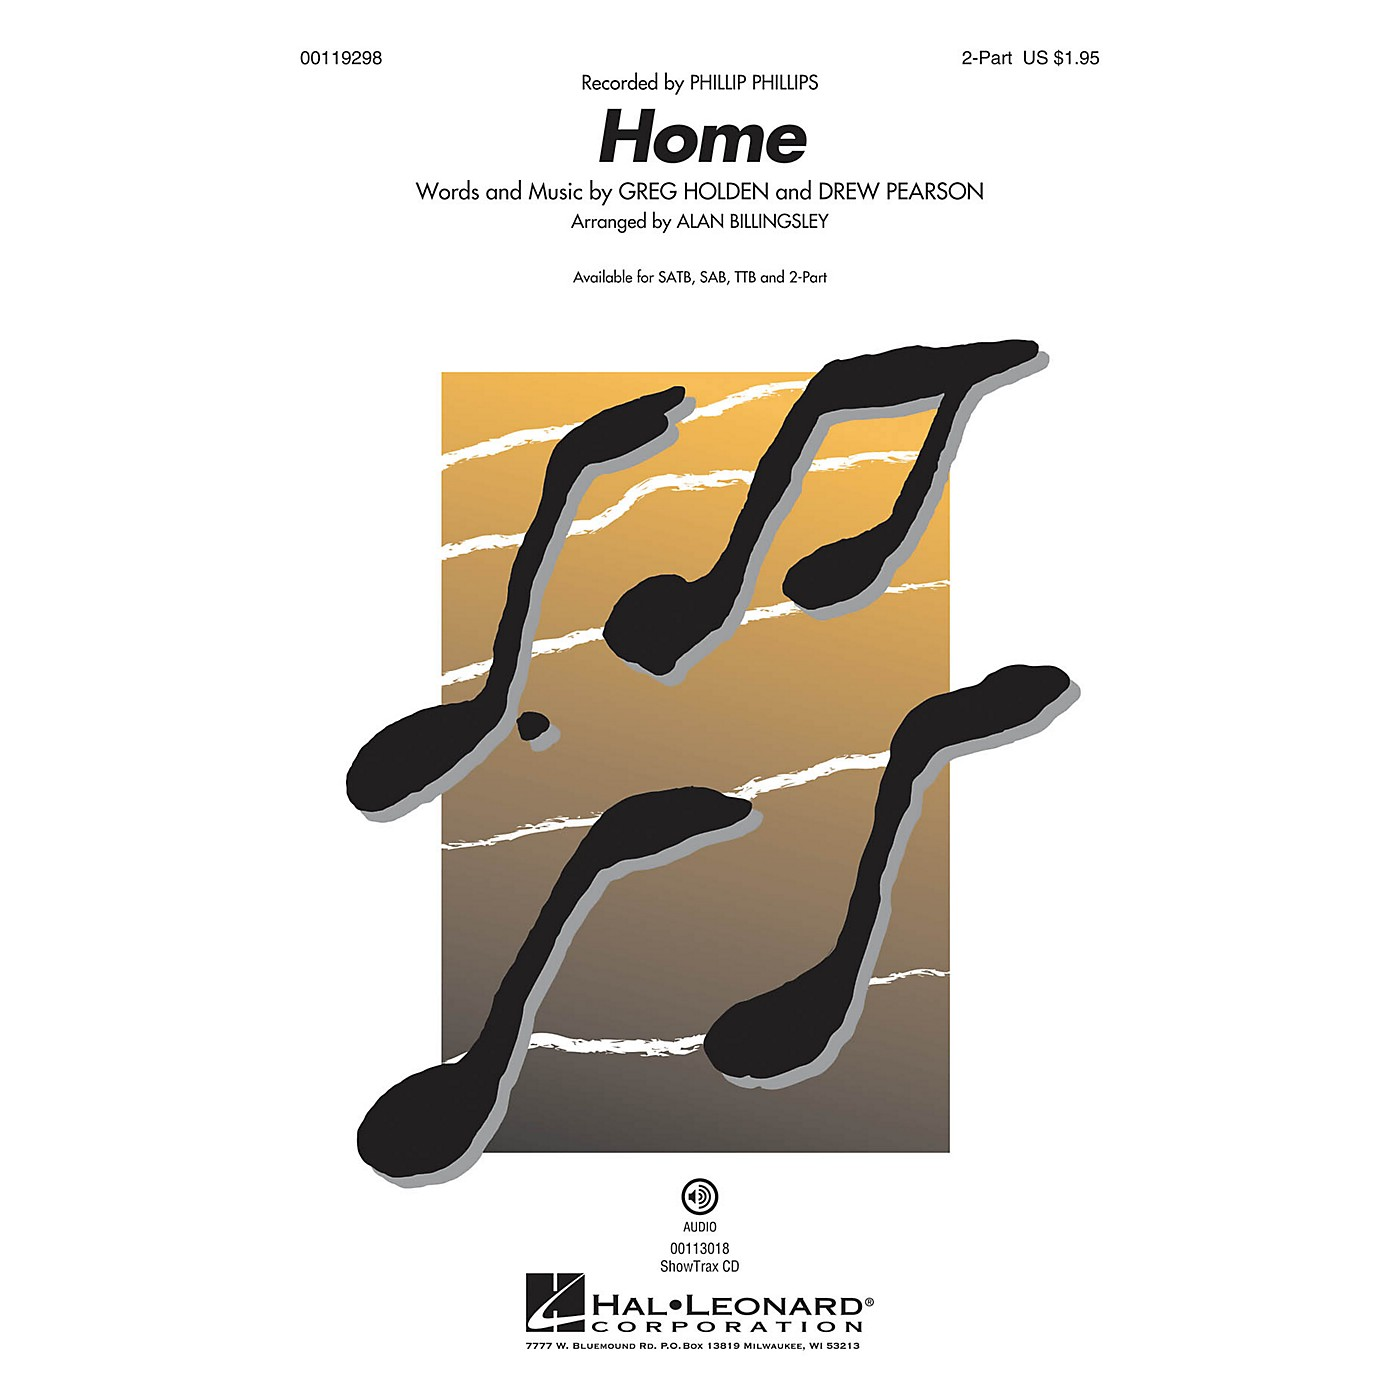 Hal Leonard Home (2-Part Mixed) 2-Part by Phillip Phillips arranged by Alan Billingsley thumbnail